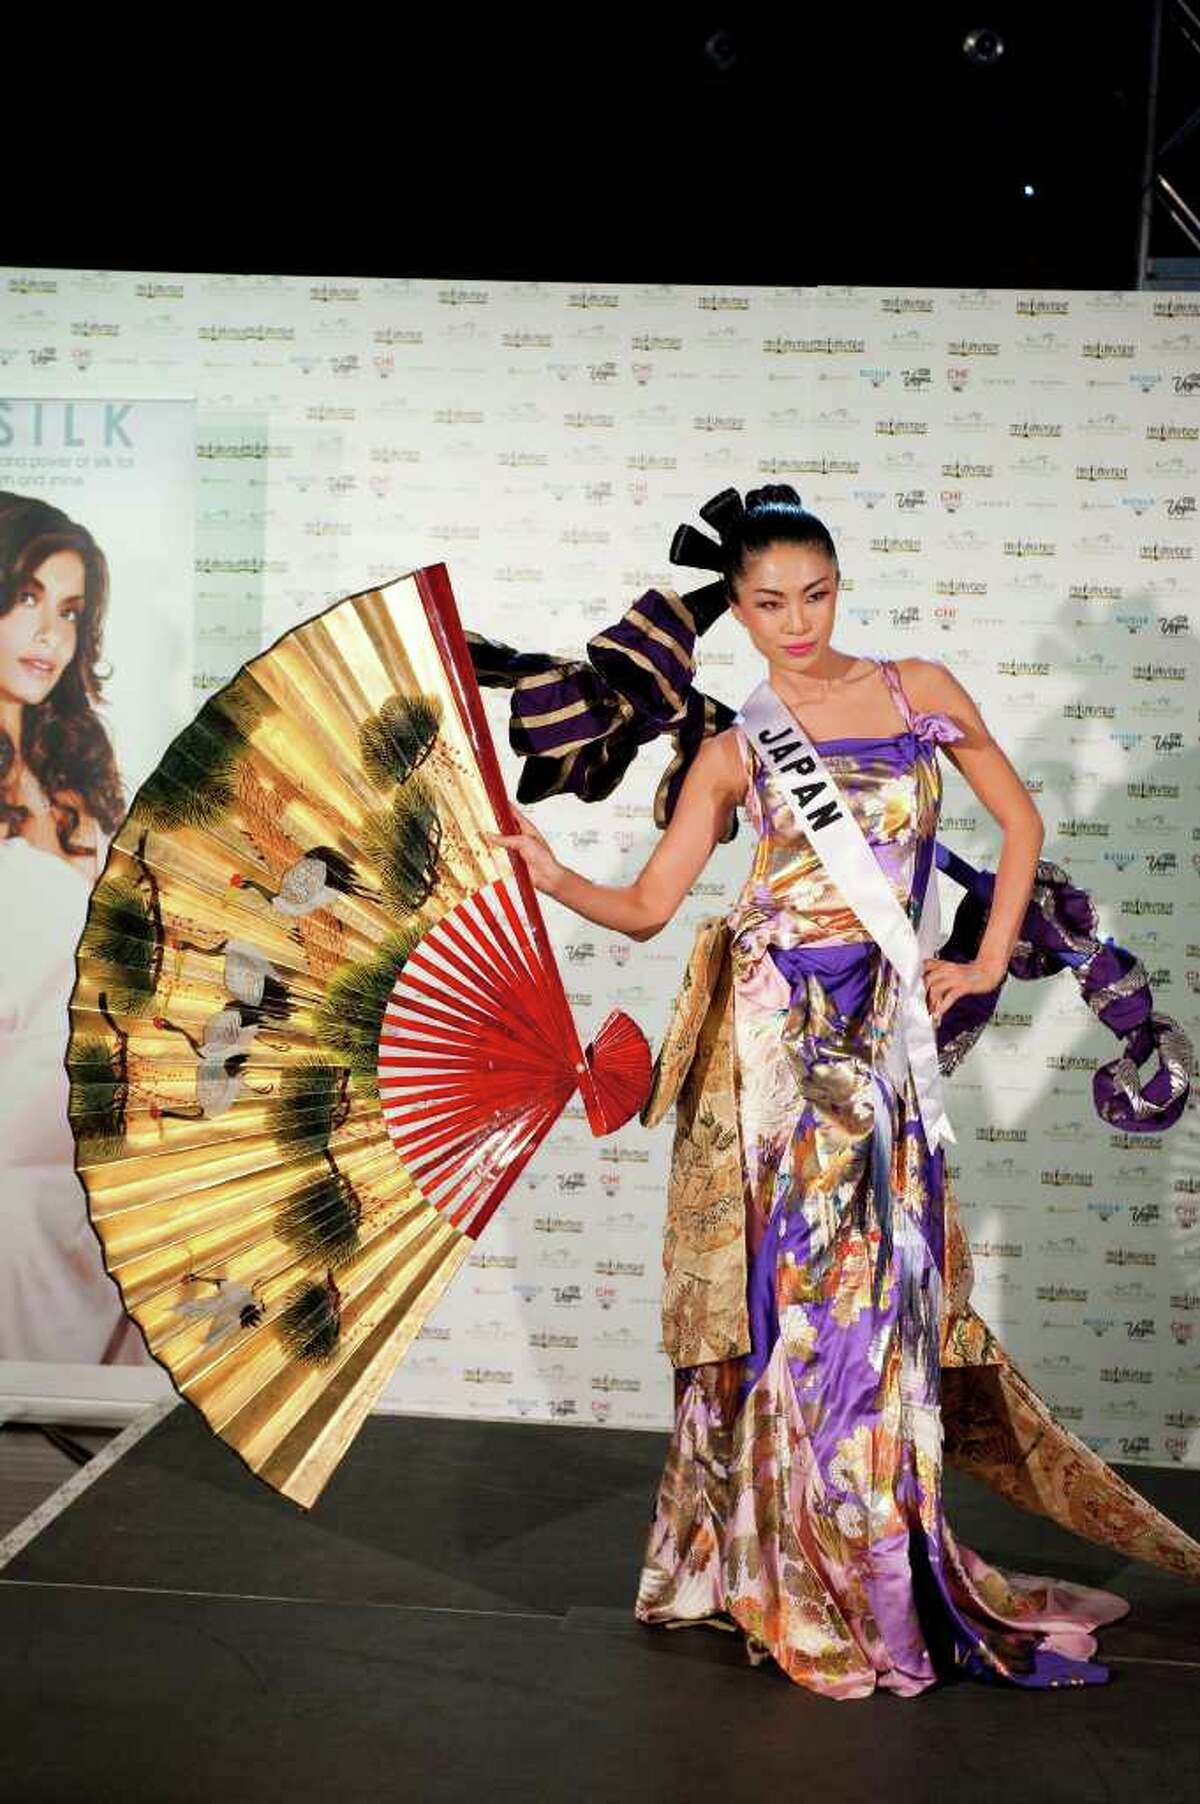 In a photo provided by the Miss Universe Organization, Maiko Itai, Miss Japan 2010, poses in her national costume at the Mandalay Bay Resort and Casino in Las Vegas Monday, August 16, 2010. (AP Photo/Matt Petit/Miss Universe Organization LP, LLLP)